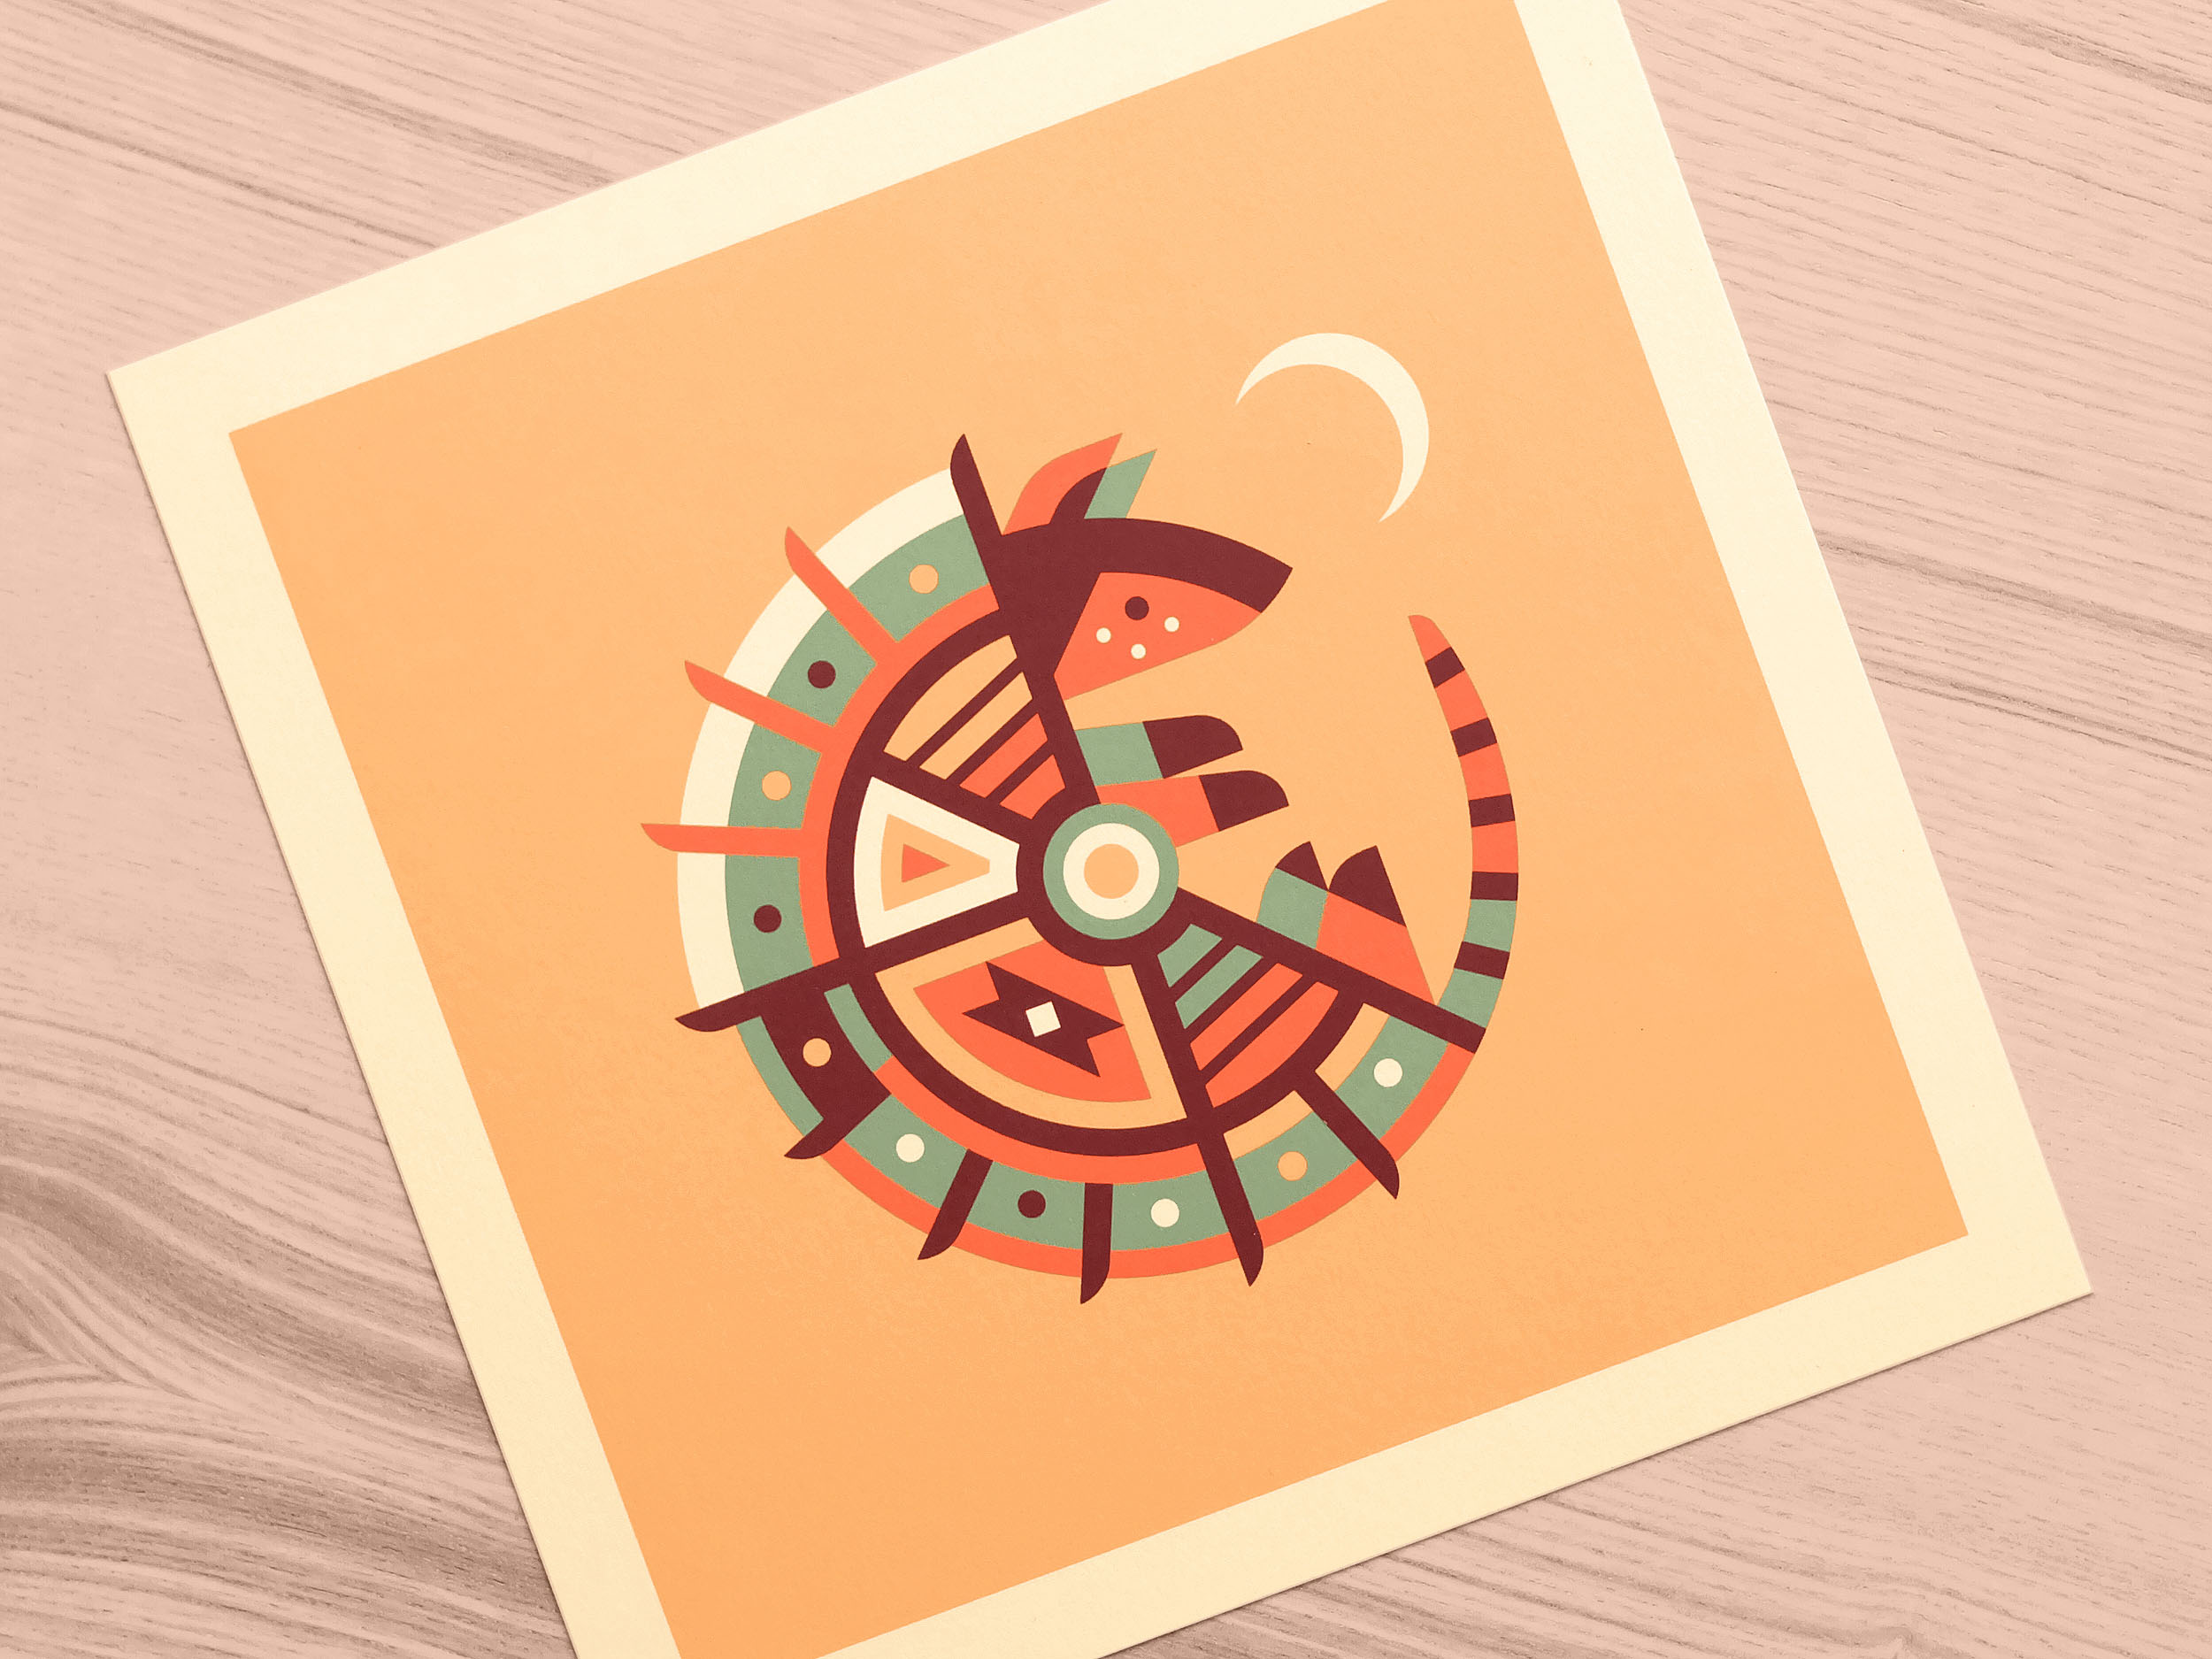 Armadillo totem print photo by Matt Anderson and Canopy Design. Limited color, geometric pattern illustration with Navajo southwest art style.